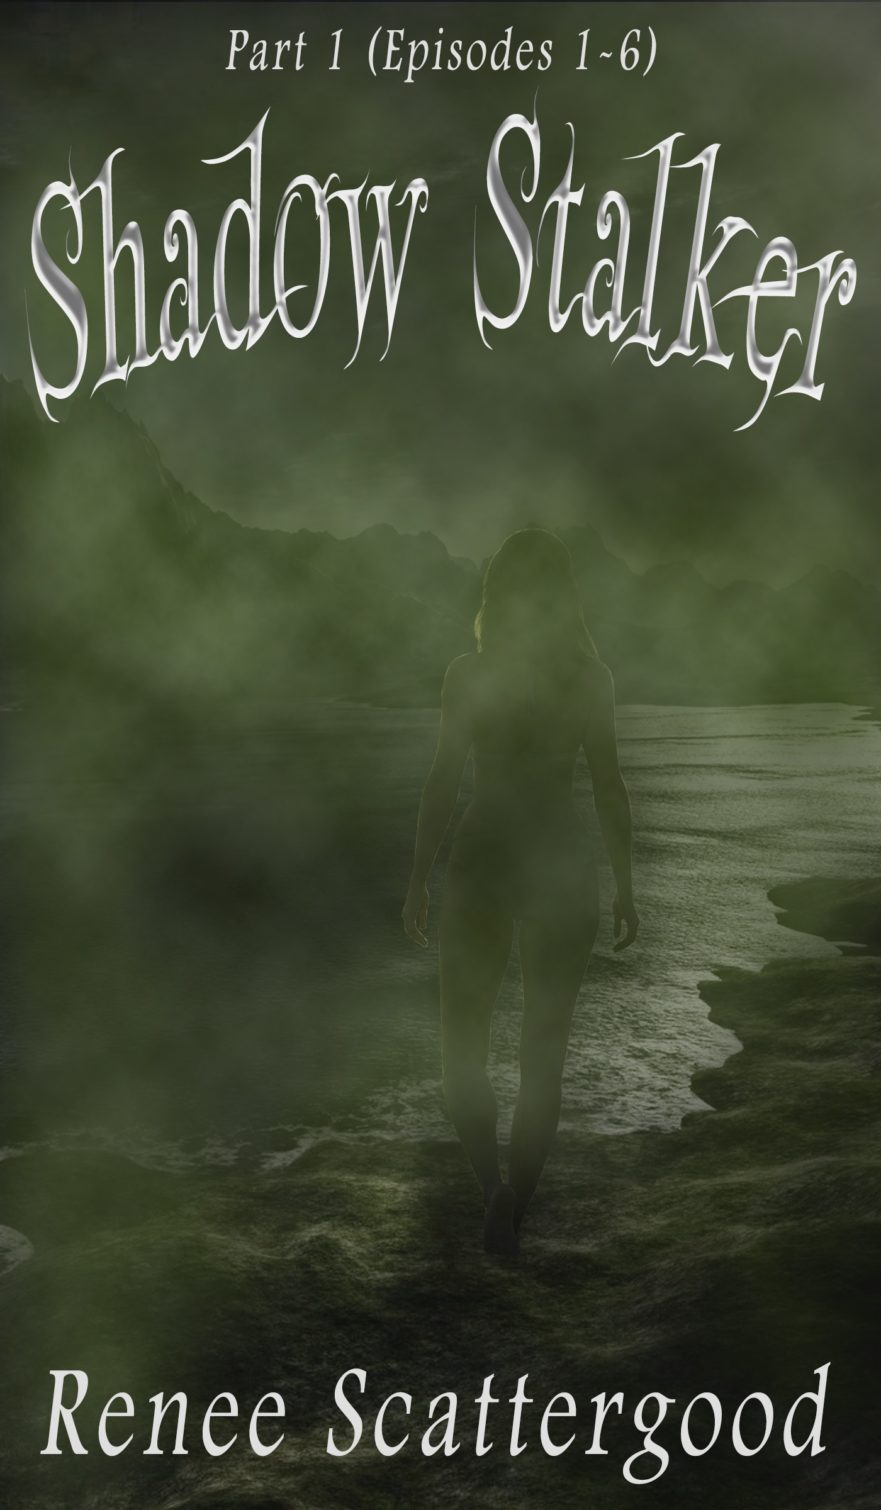 shadow stalker - renee scattergood - literative